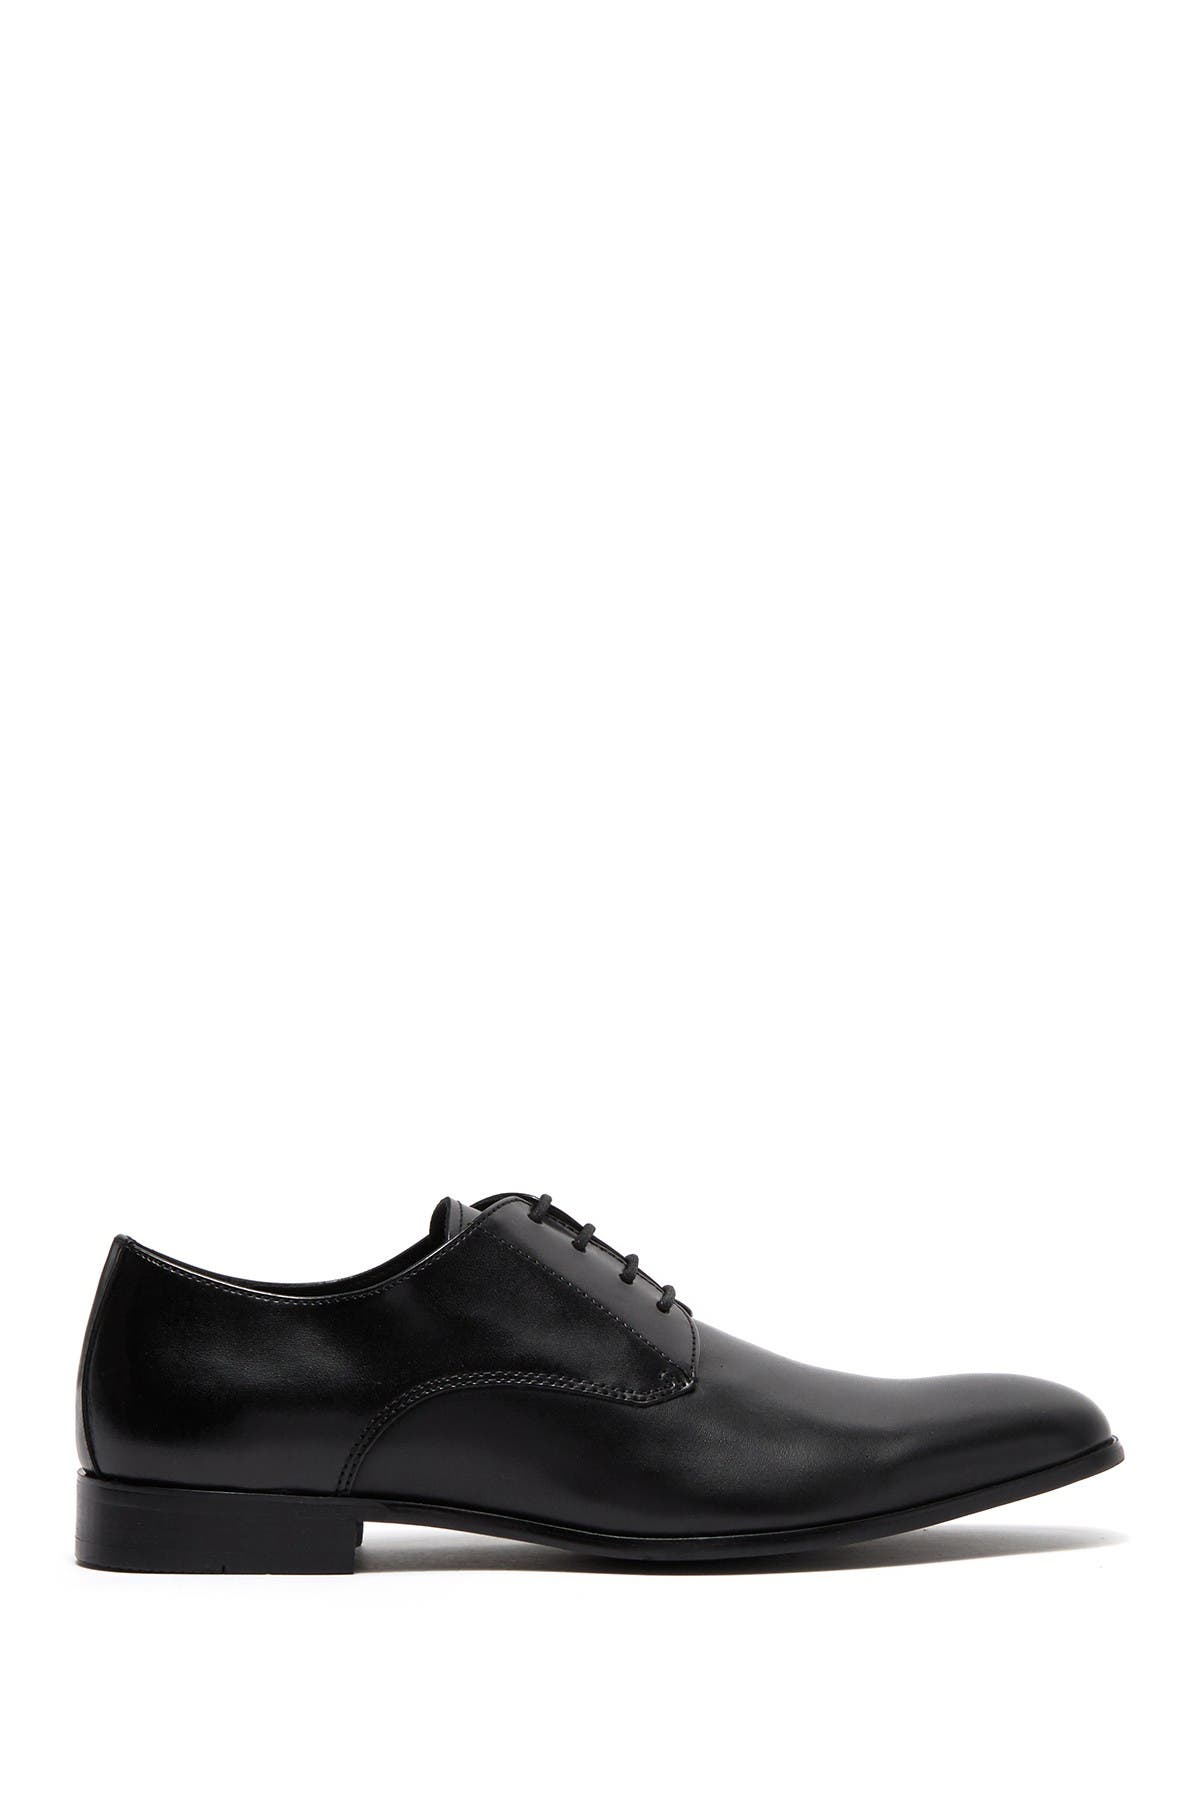 Image of Steve Madden Primlei Leather Derby